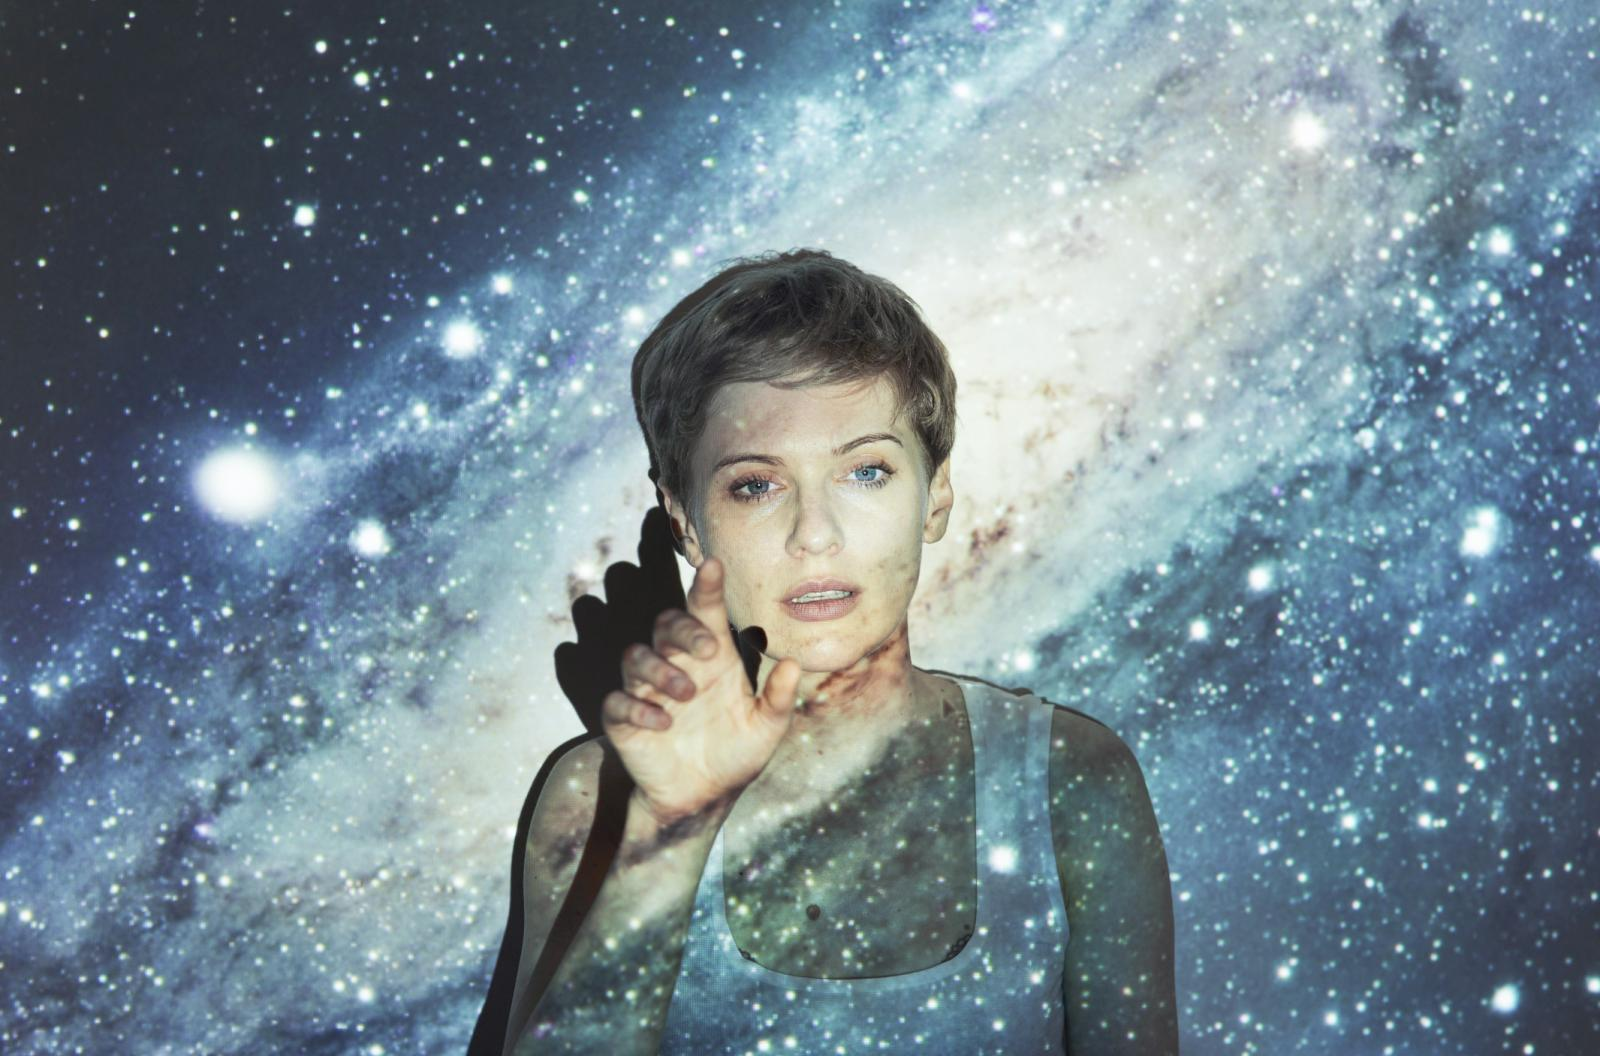 Portrait of woman with a projection of the milky way